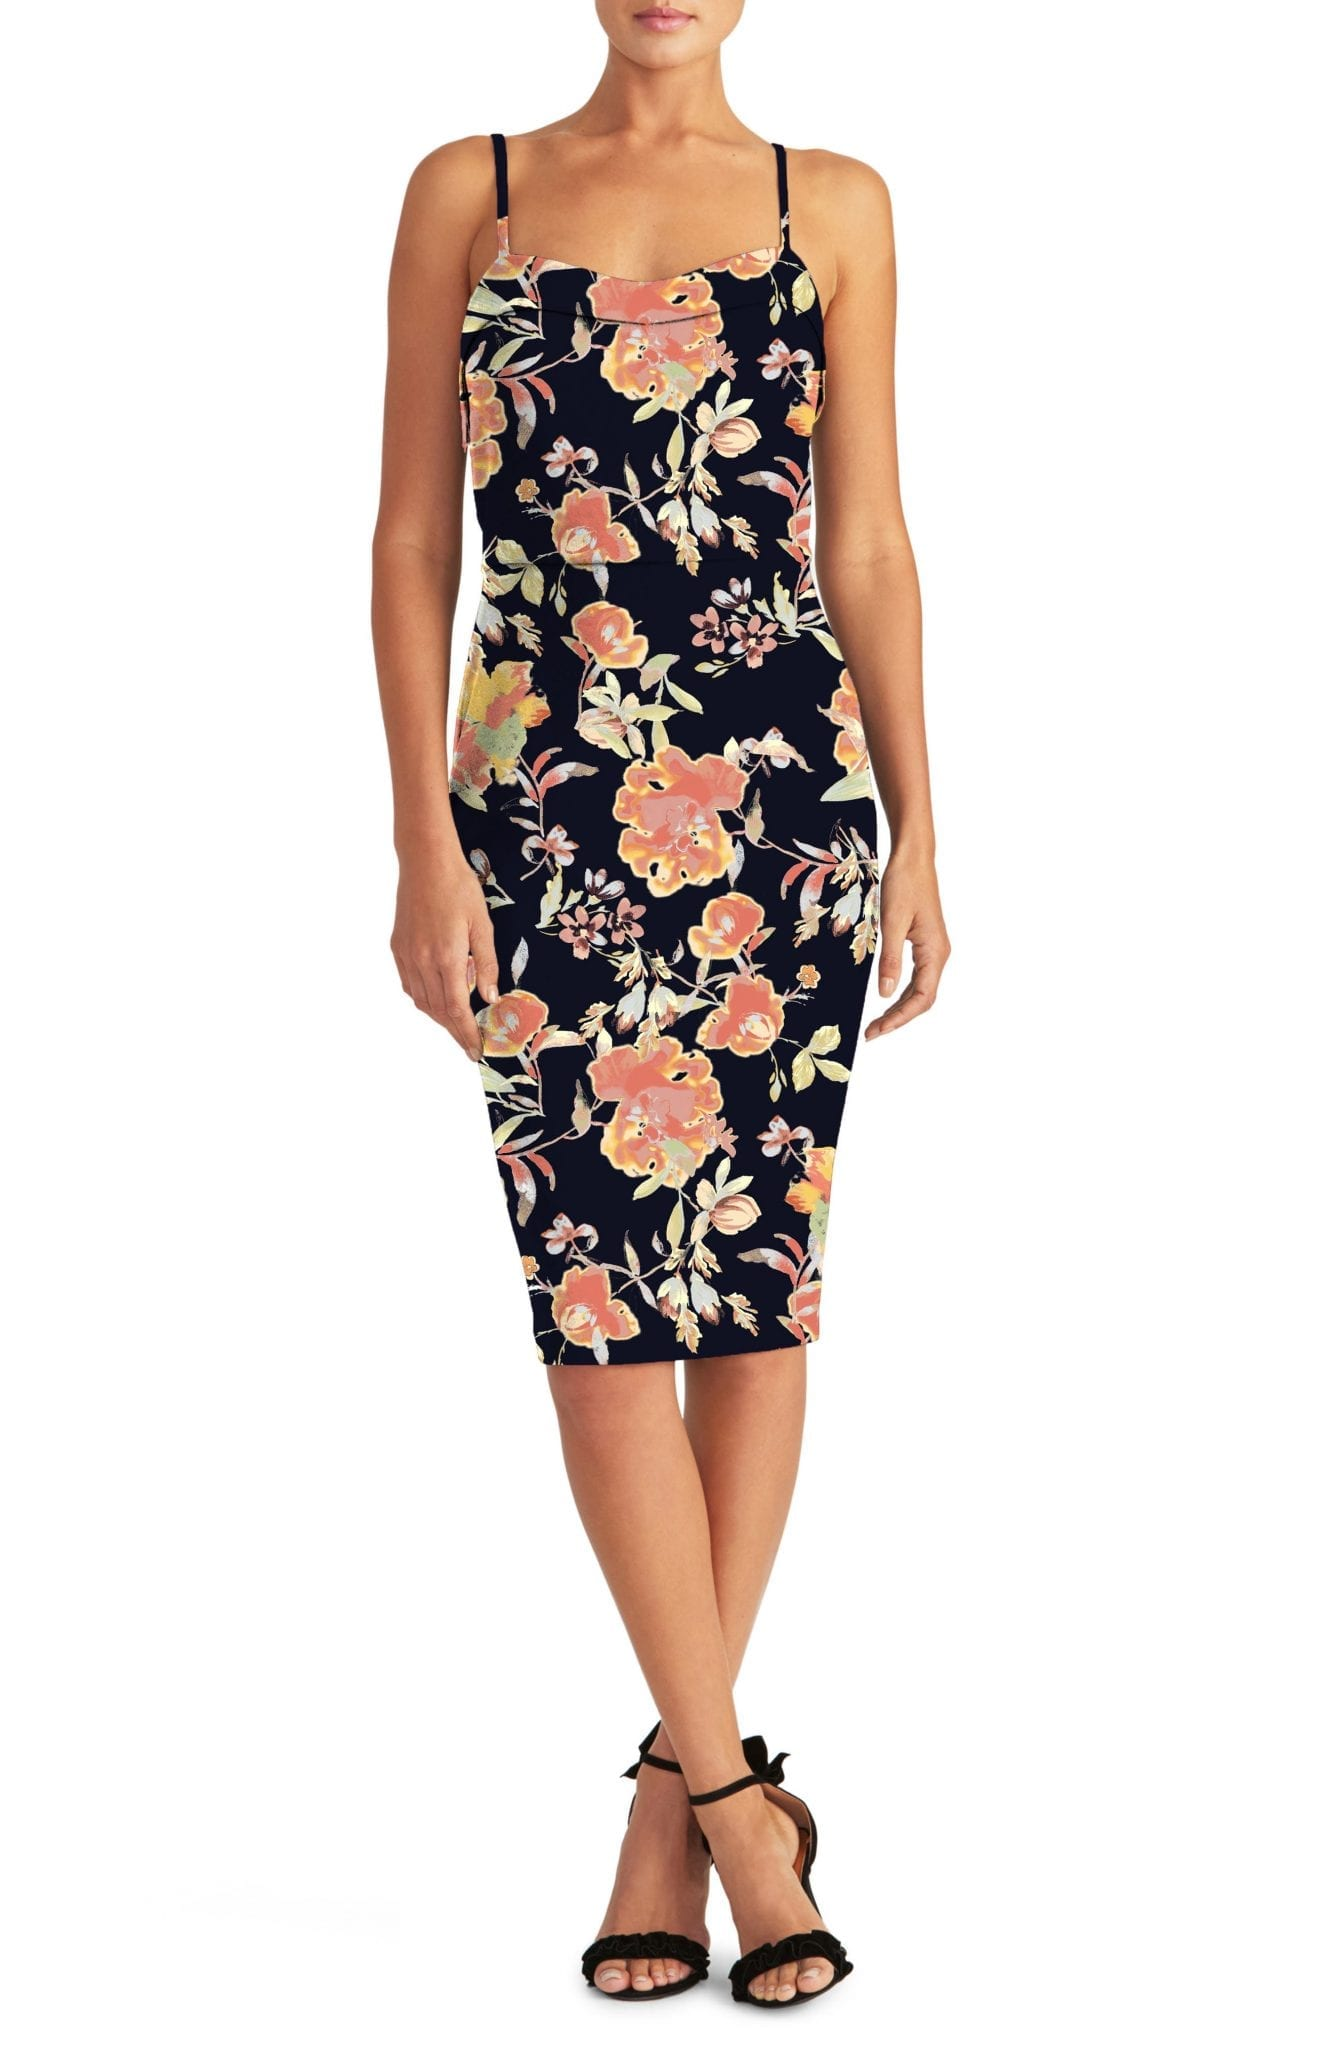 RACHEL RACHEL ROY Floral Sheath Dress